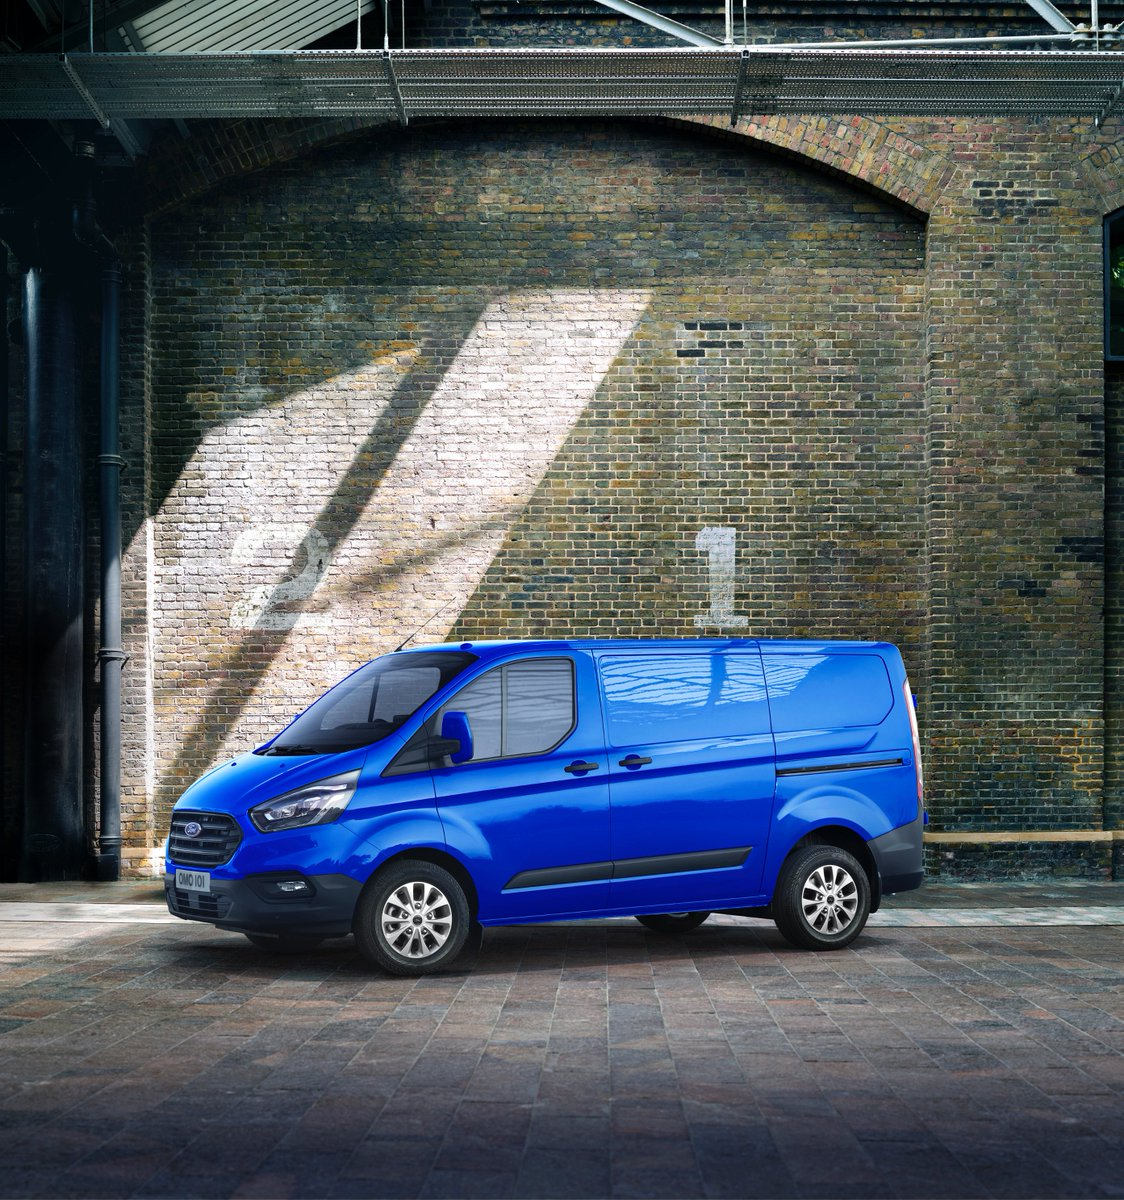 vans on you leasing car ford reliable fordtransit fleetdrive rely a transit can